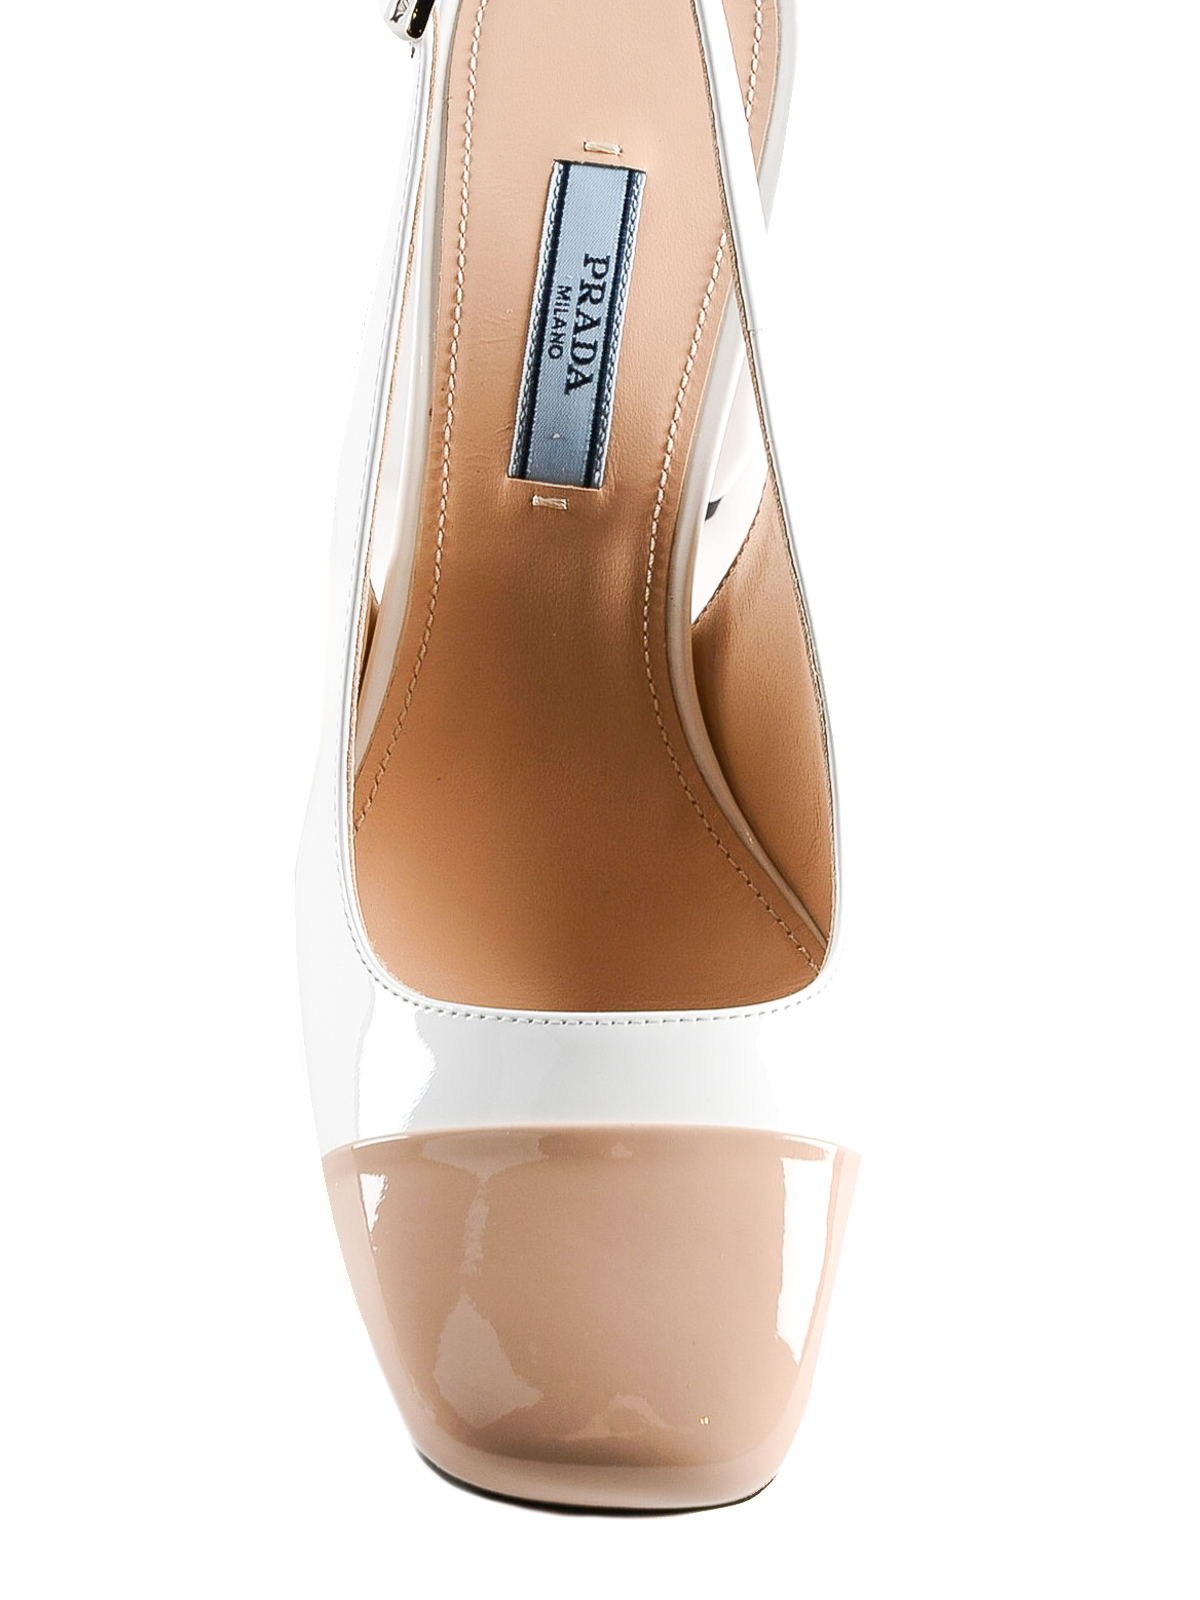 3436342eb iKRIX PRADA: court shoes - Patent leather two-tone slingback pump